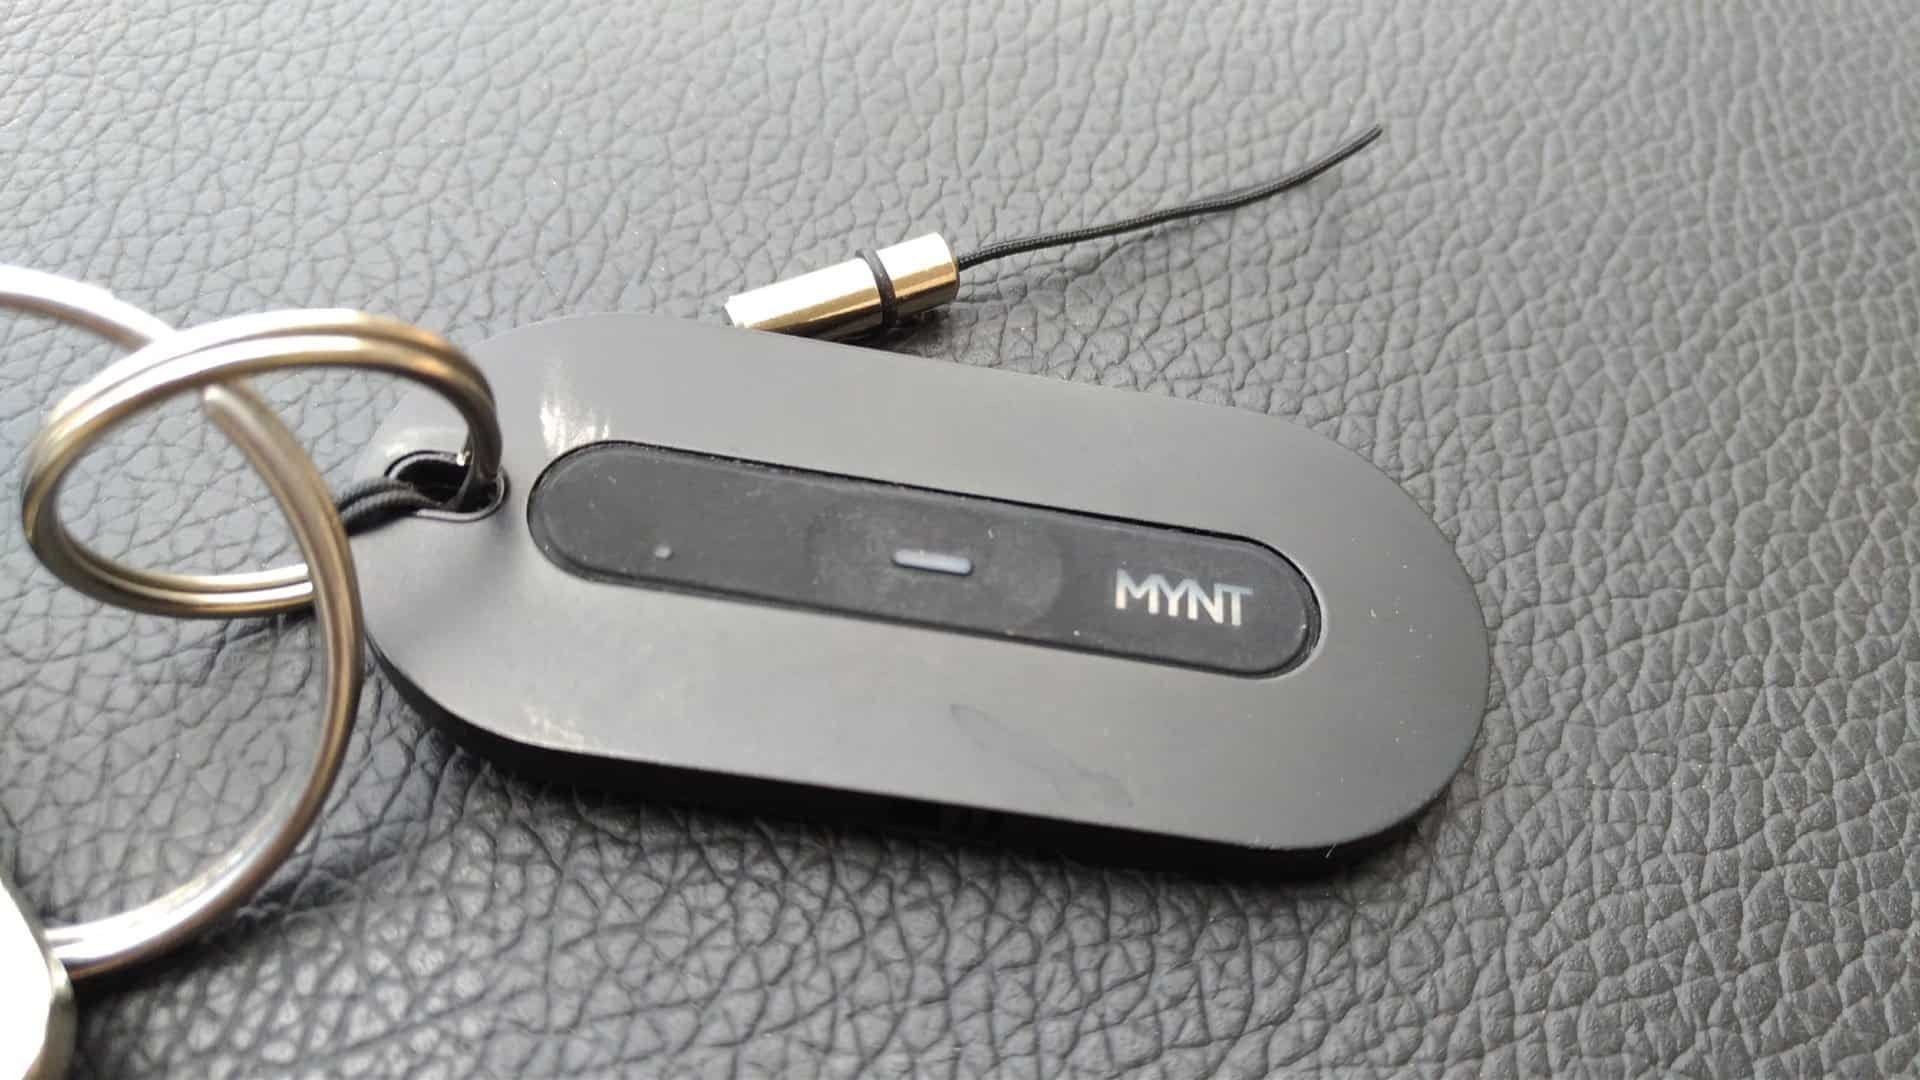 Mynt Smart Tracker & Key Finder Review - You'll Only Need This One Tiny Gadget To Track All your Belongings! - 1